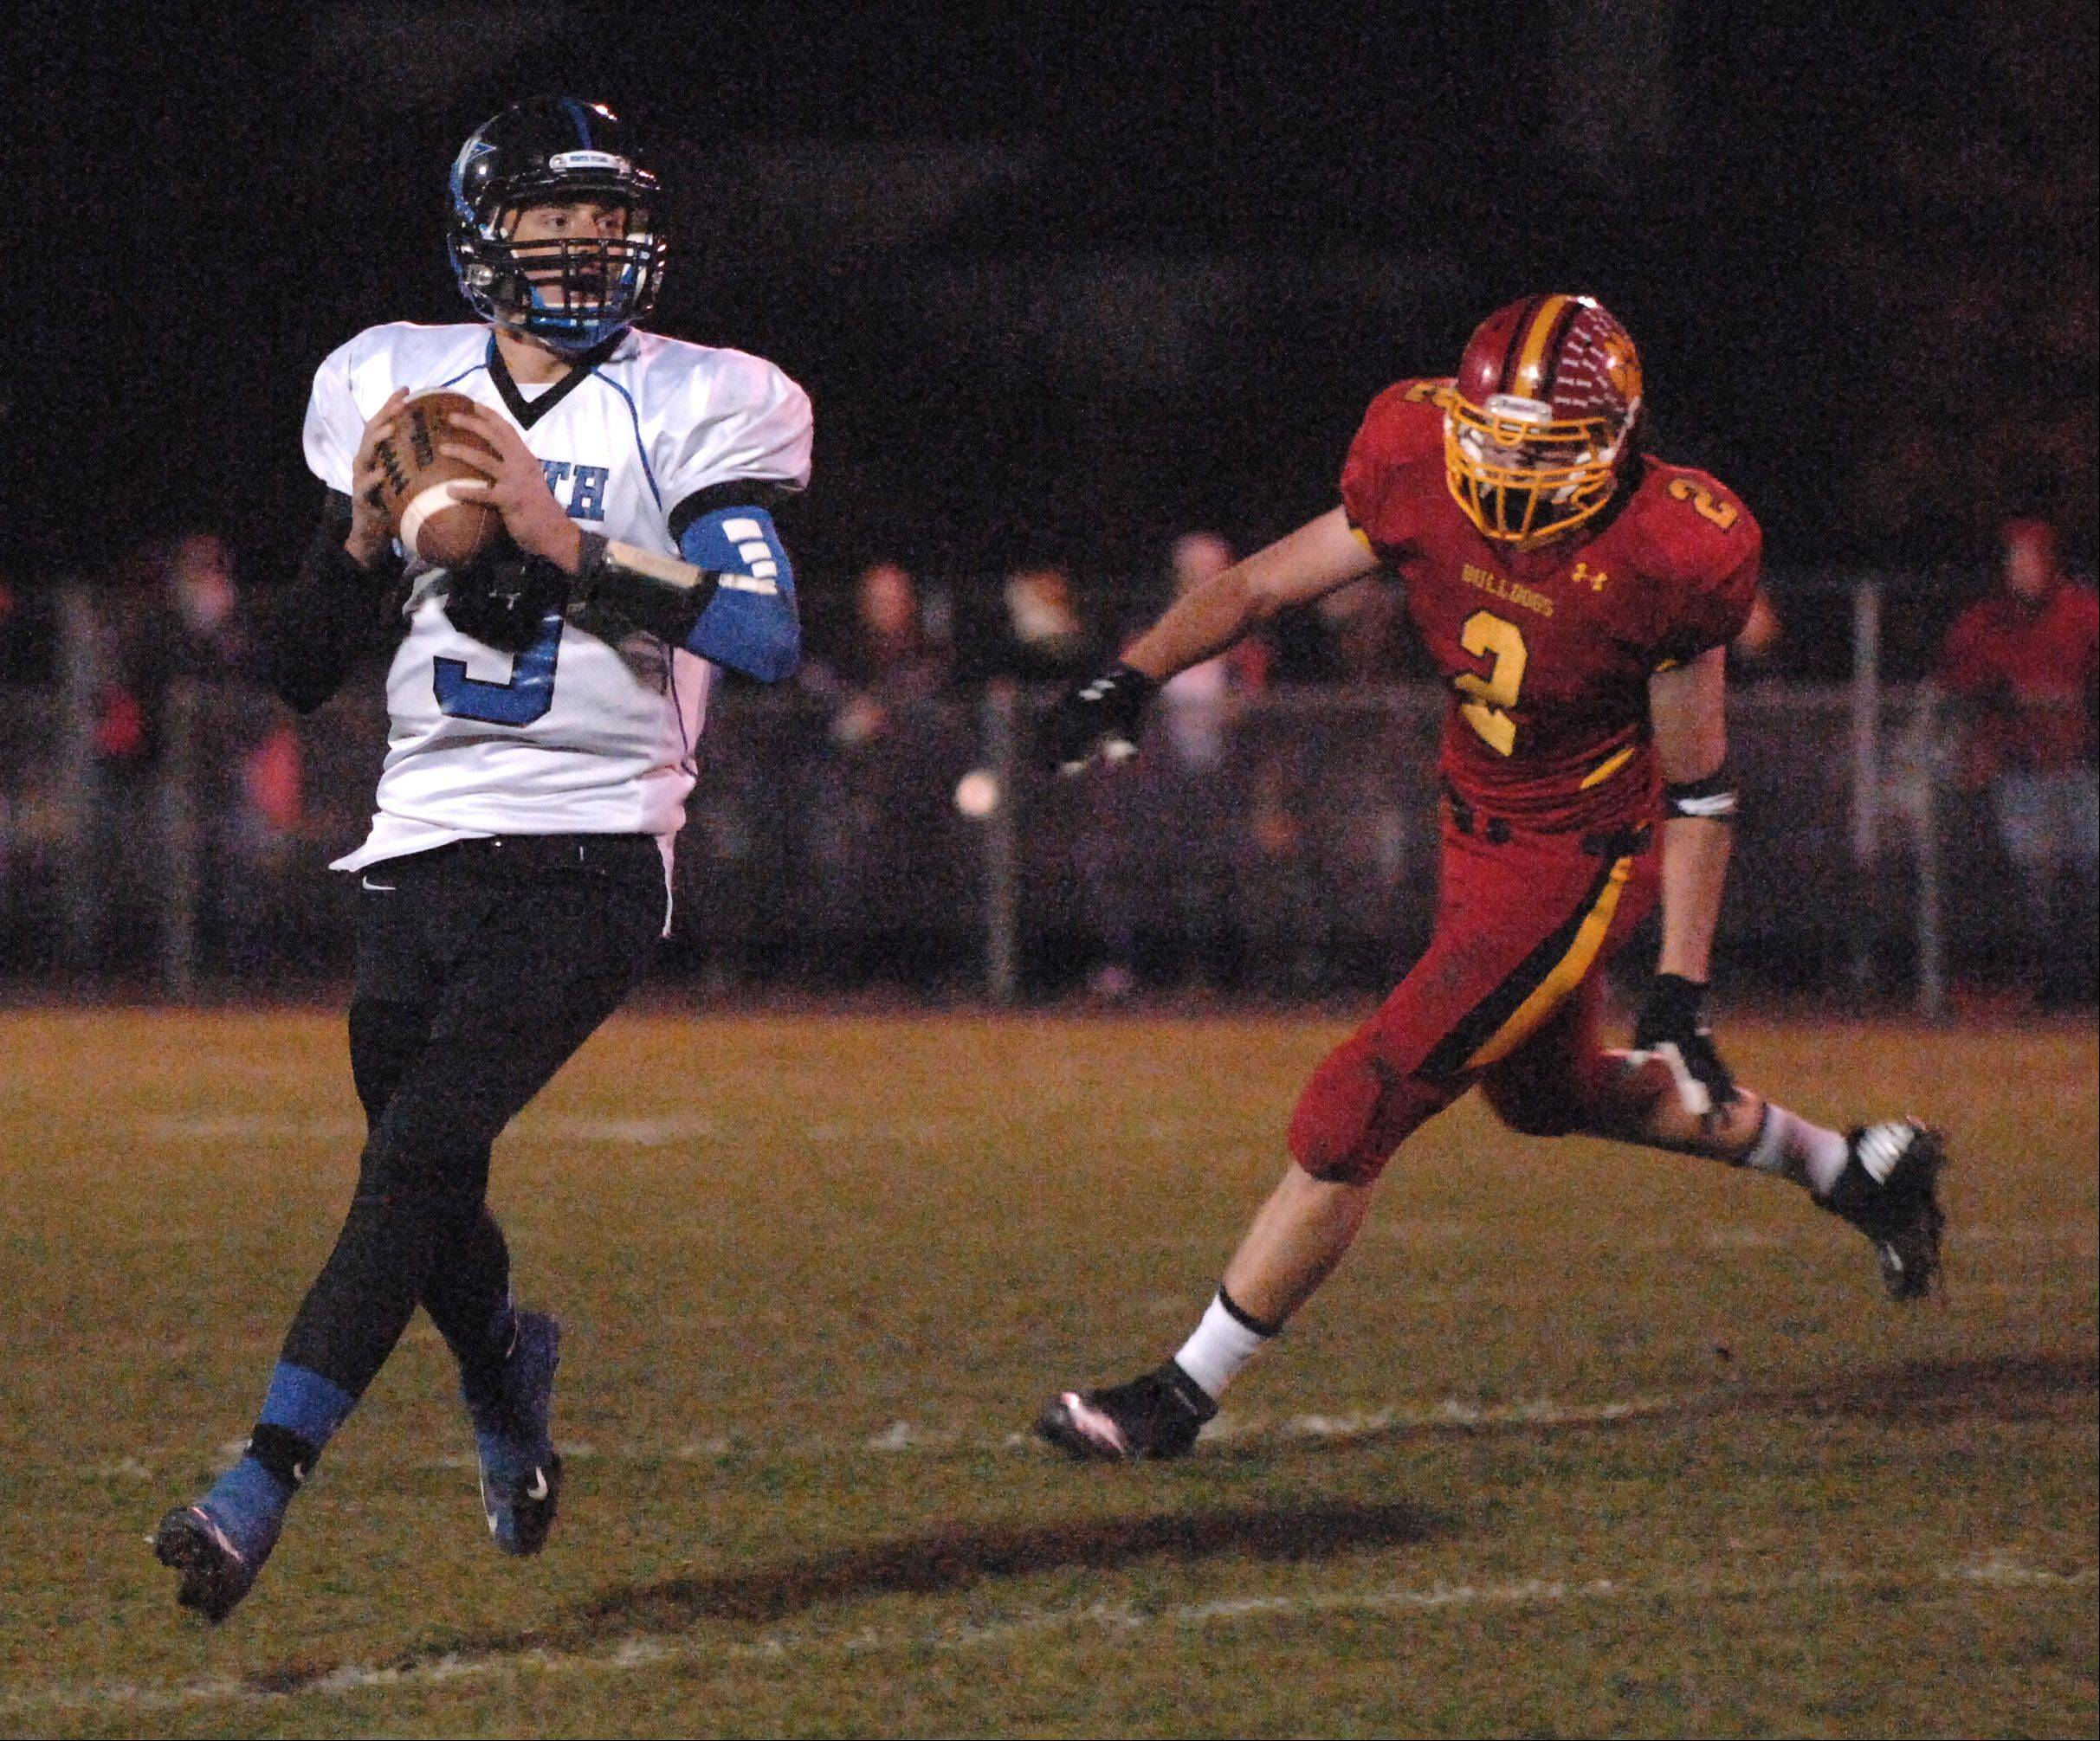 St. Charles North quarterback Ryan Fischbach looks for a receiver.